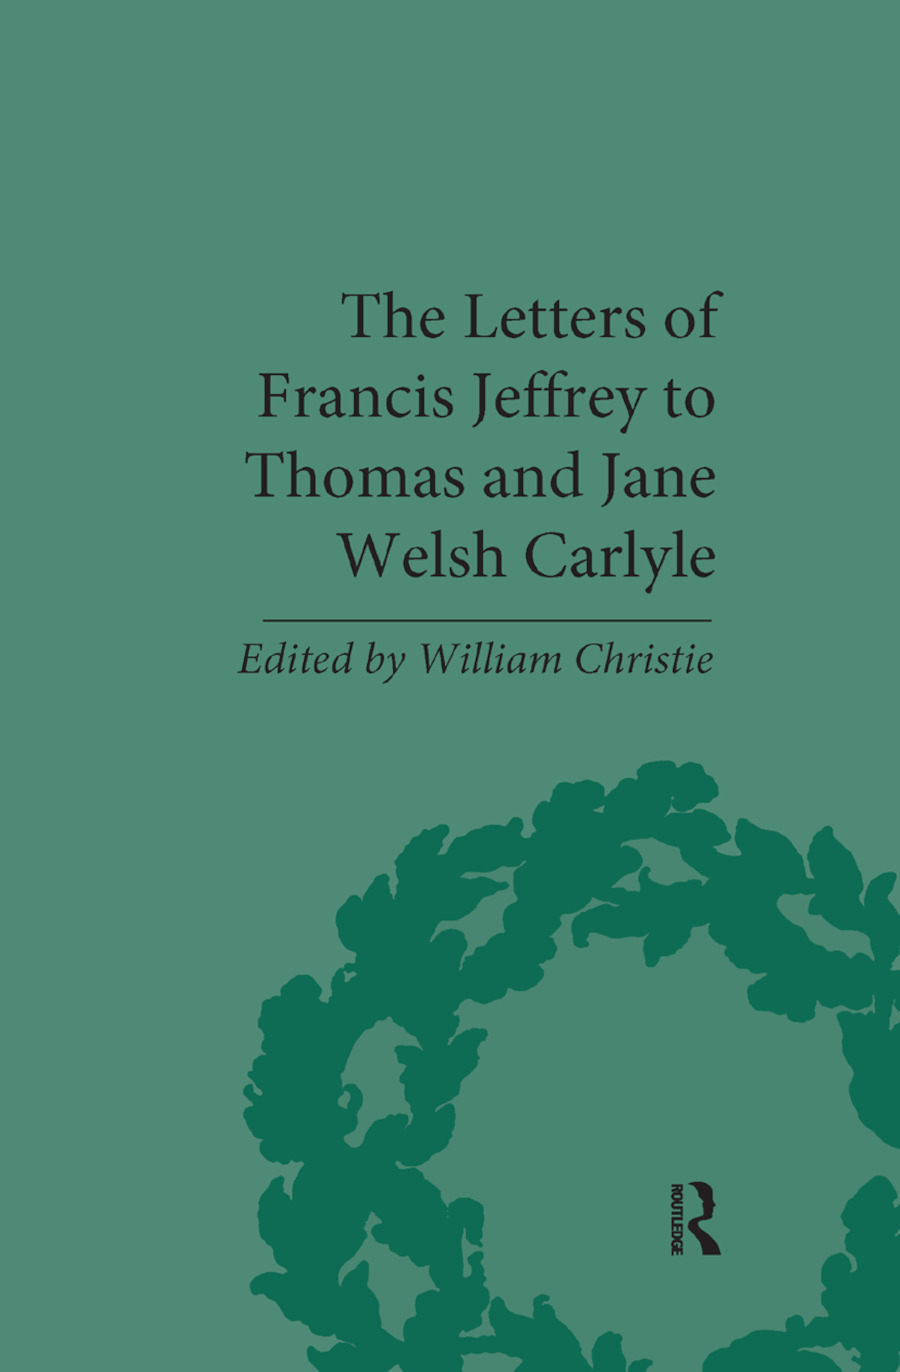 The Letters of Francis Jeffrey to Thomas and Jane Welsh Carlyle book cover